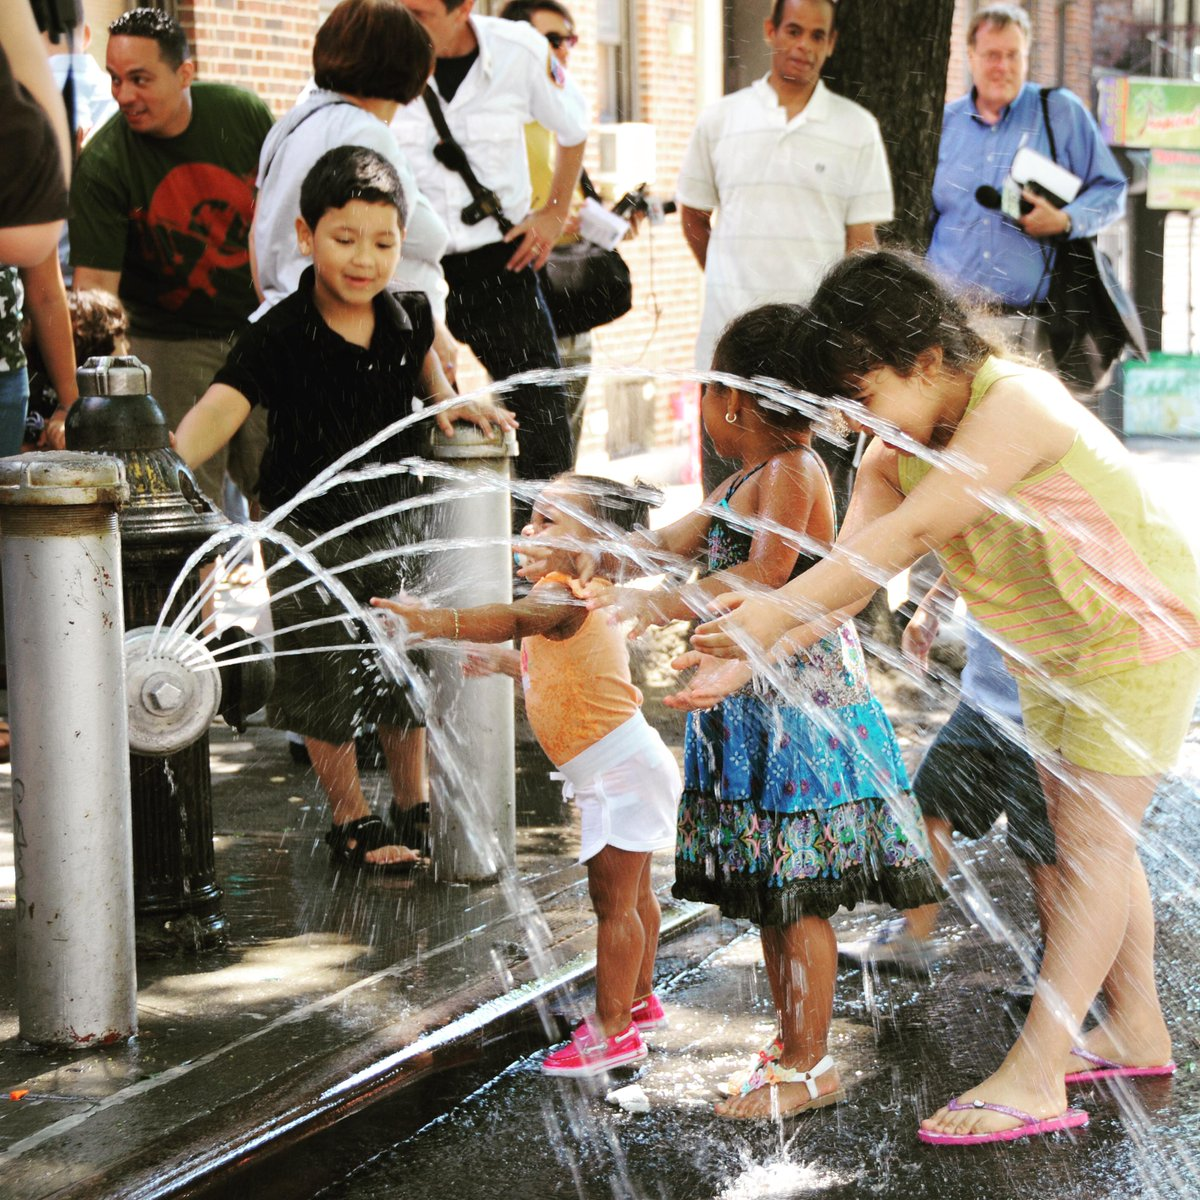 Hydrants can be opened legally w/City-approved spray caps! Get them @FDNY fire houses for free http://t.co/odWeIi5I8B http://t.co/wzsGLRFAlJ